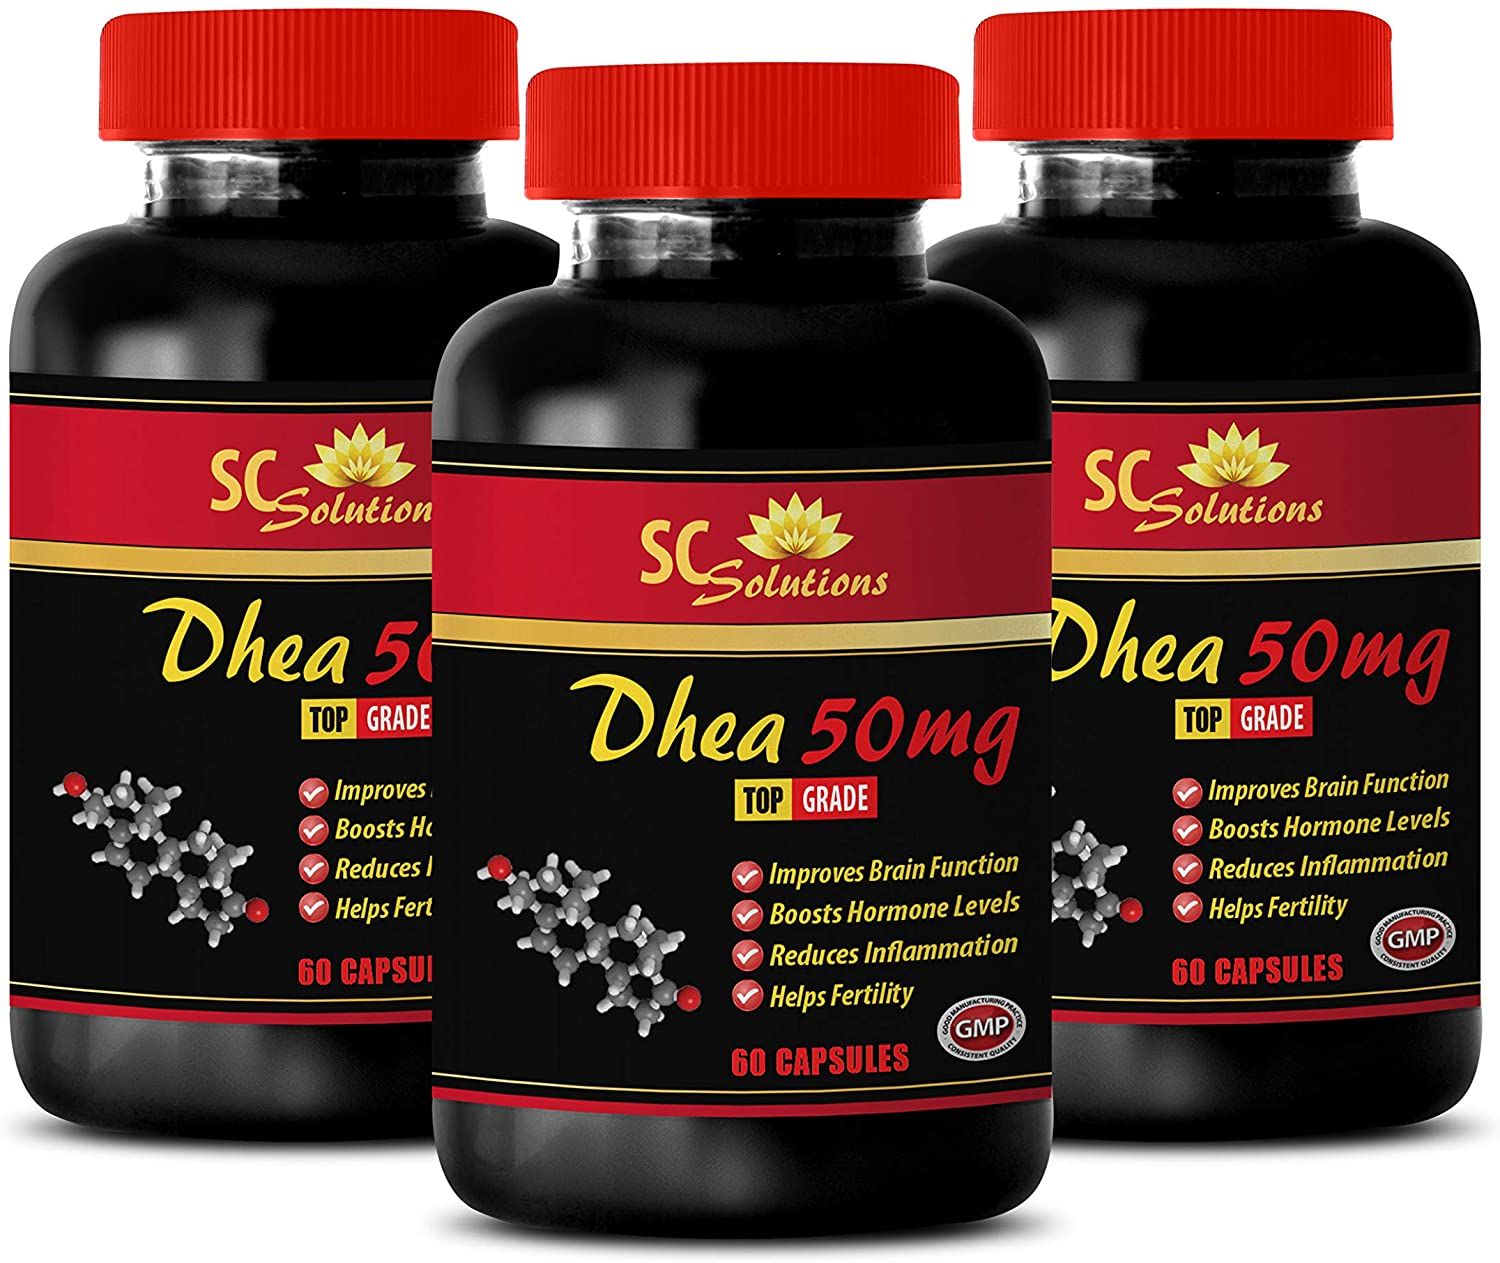 Testosterone Supplements - DHEA (Dehydroepiandrosterone) - Dhea for Women - 3 Bottles 180 Capsules